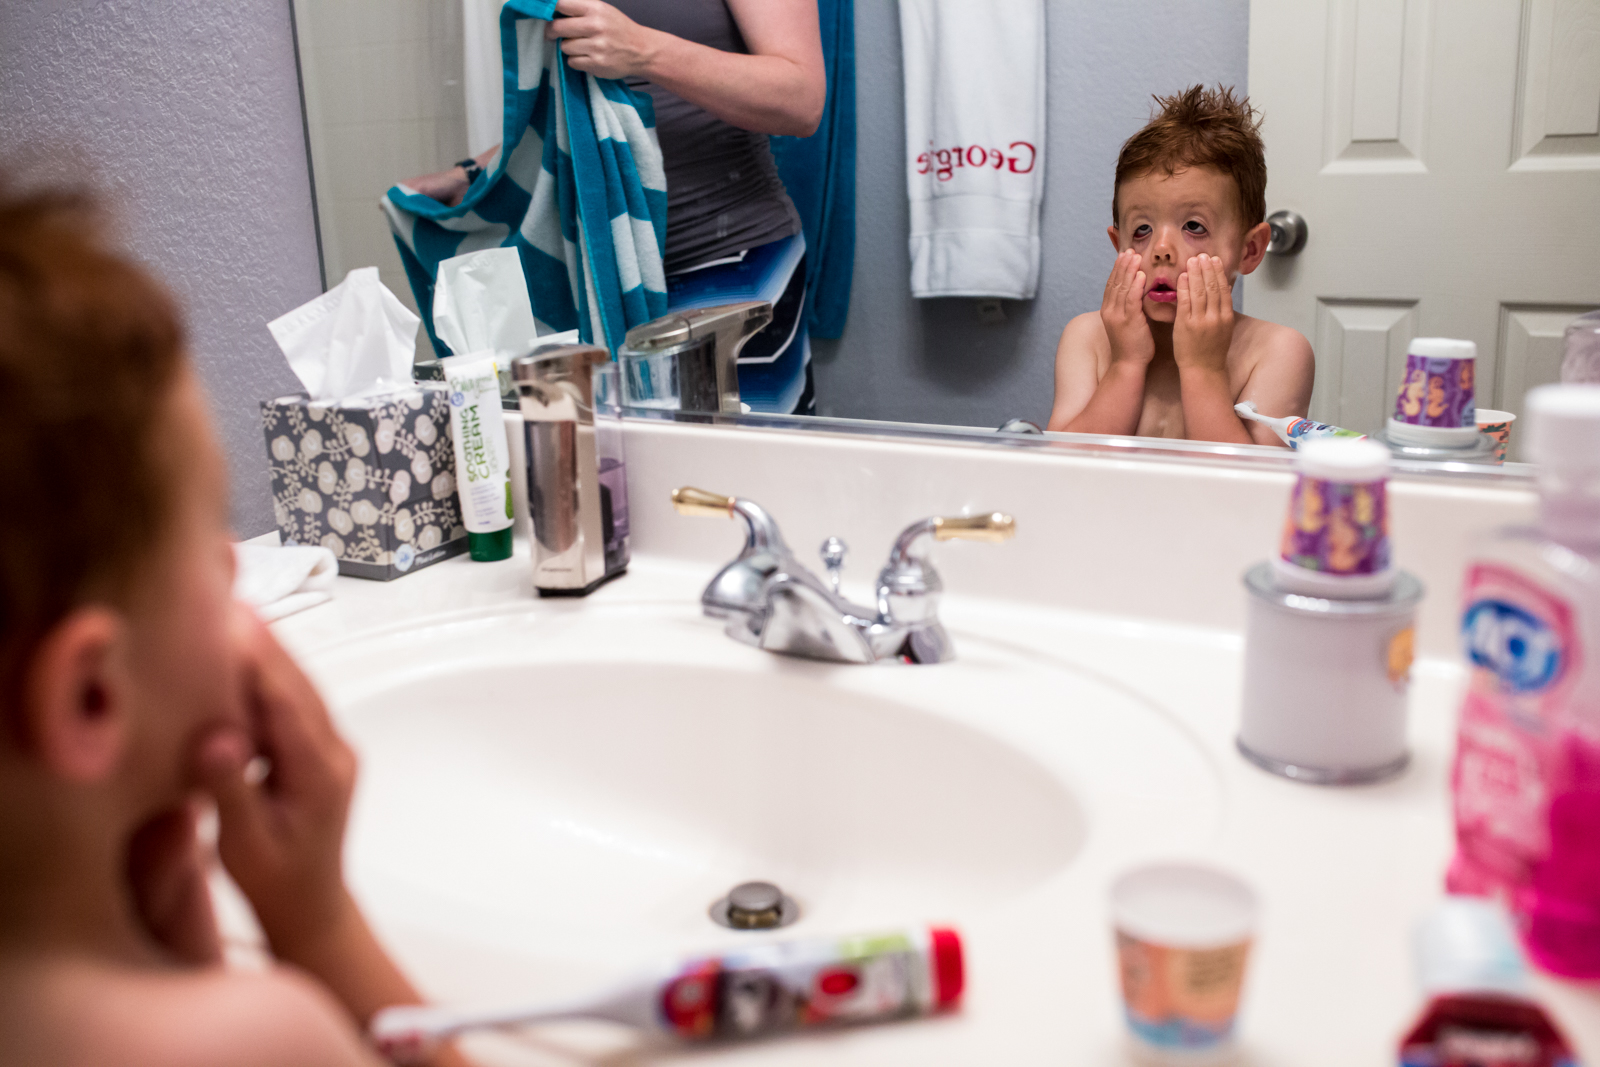 Lawren Rose Photography takes a funny photo during a maternity session of a little boy making goofy faces at himself in the bathroom mirror in mckinney texas